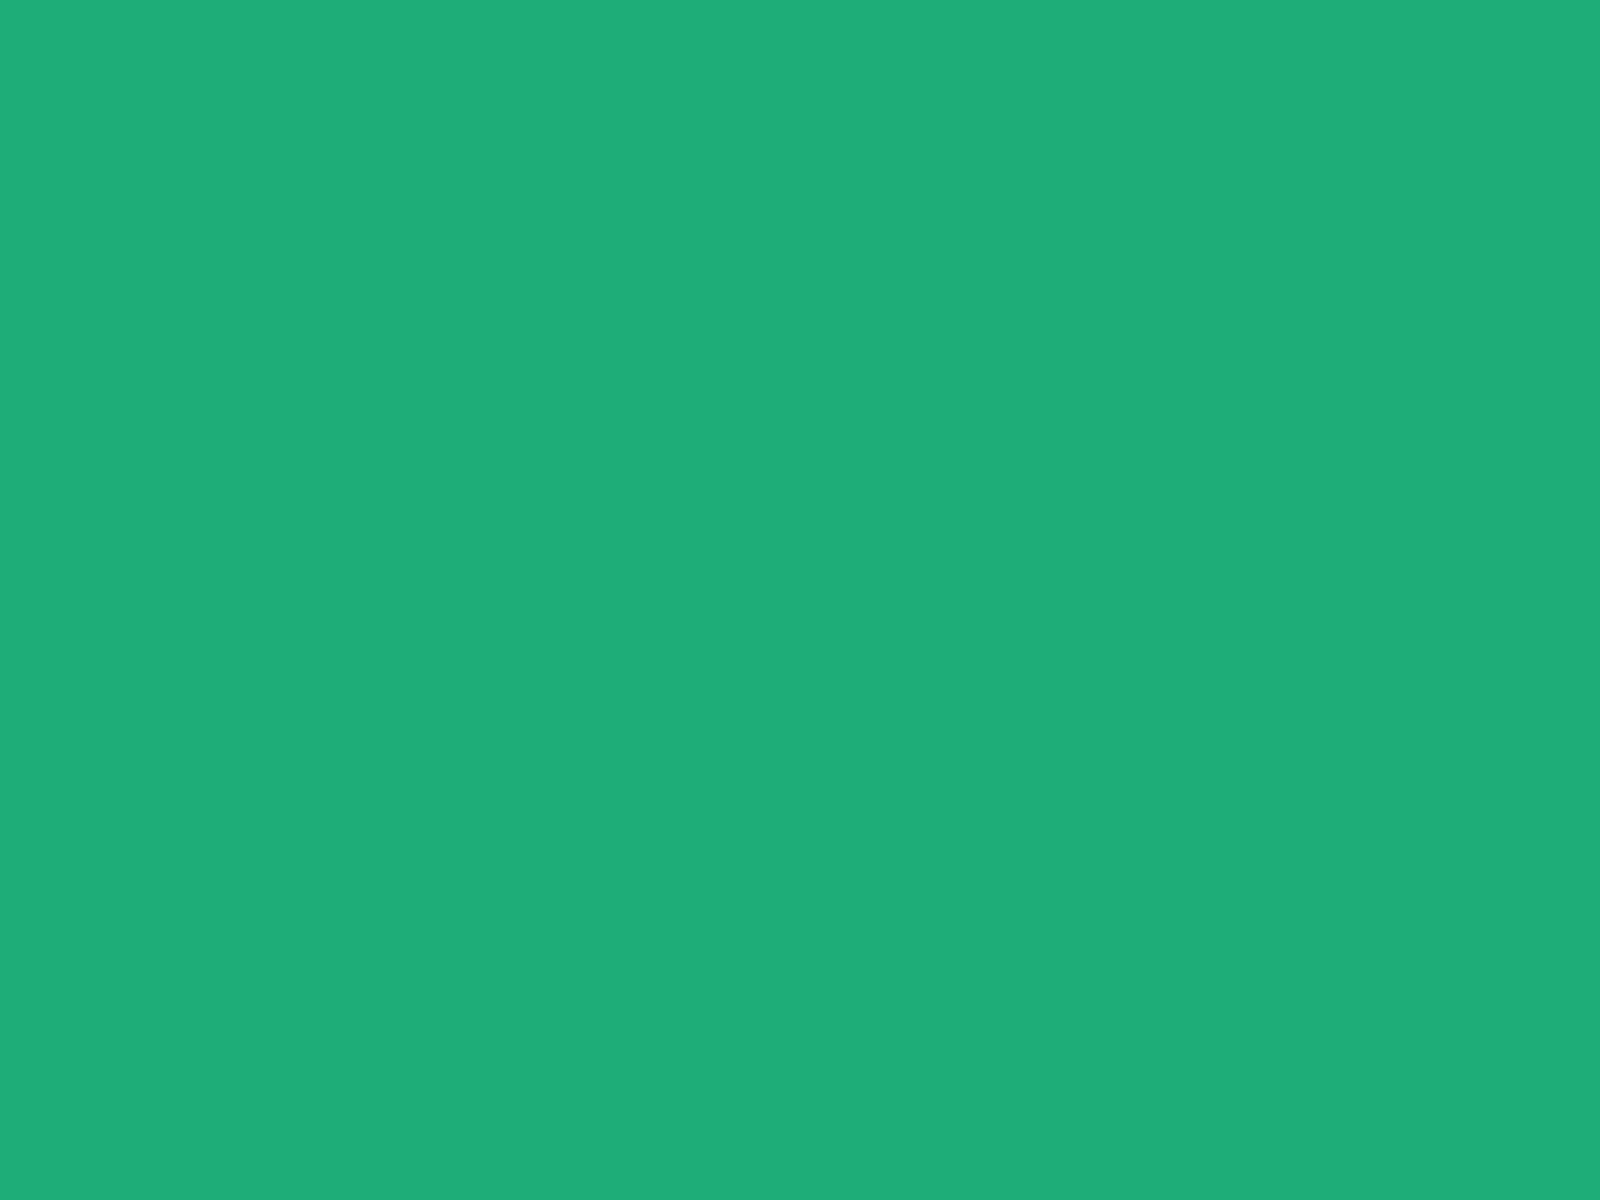 1600x1200 Green Crayola Solid Color Background